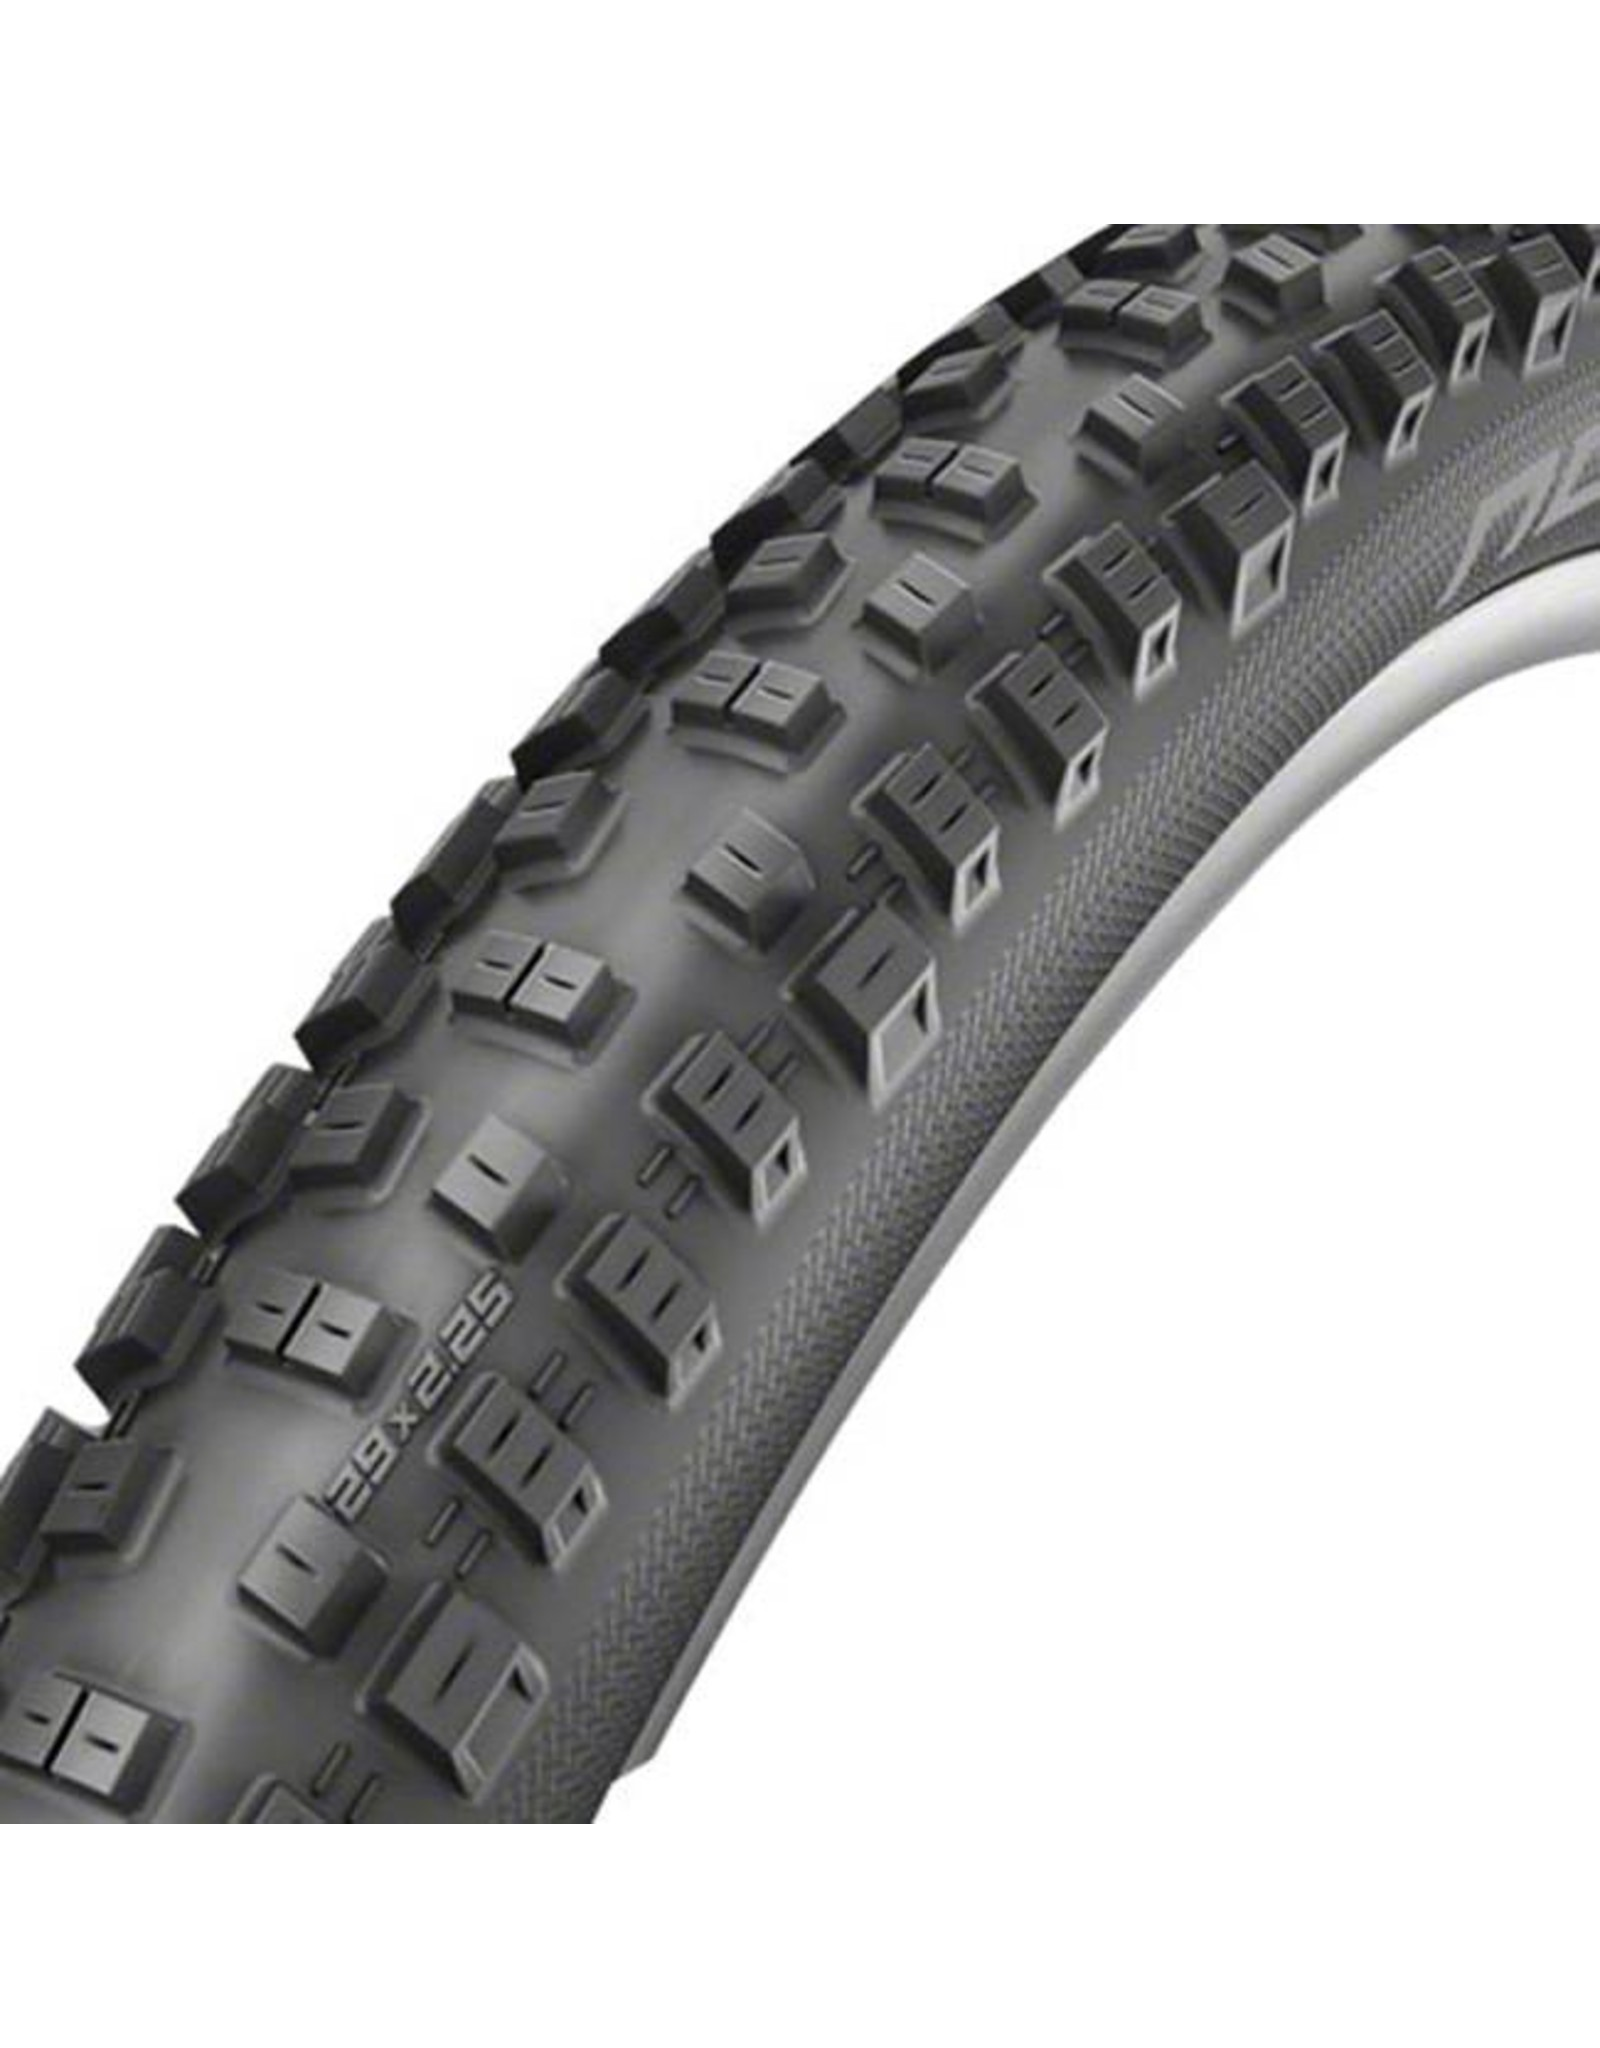 "Schwalbe Schwalbe Nobby Nic Tire: 29 x 2.25"", Folding Bead, Performance Line, Addix Performance Compound, Tubeless Ready, Black"